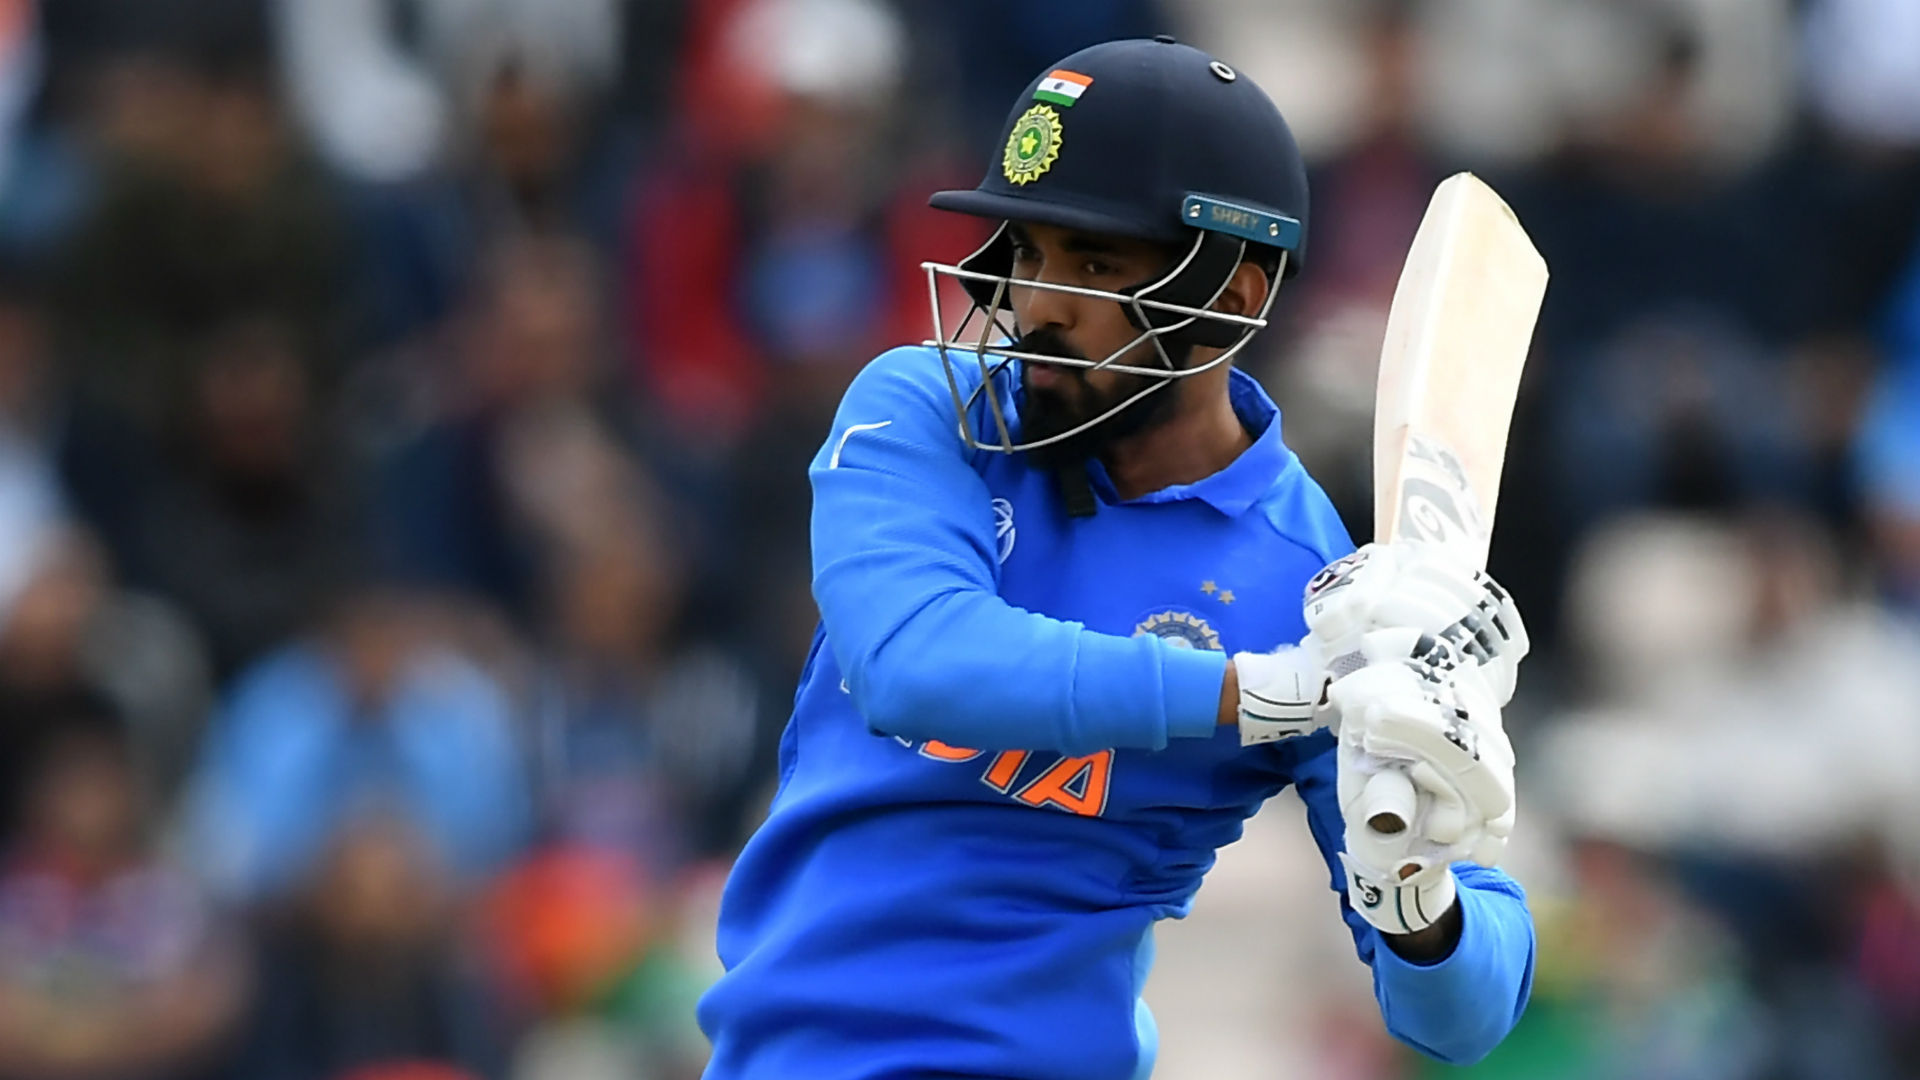 KL Rahul Becomes Second-Fastest Indian to Score 1000 T20I Runs, Achieves Landmark During India vs West Indies 1st T20I 2019